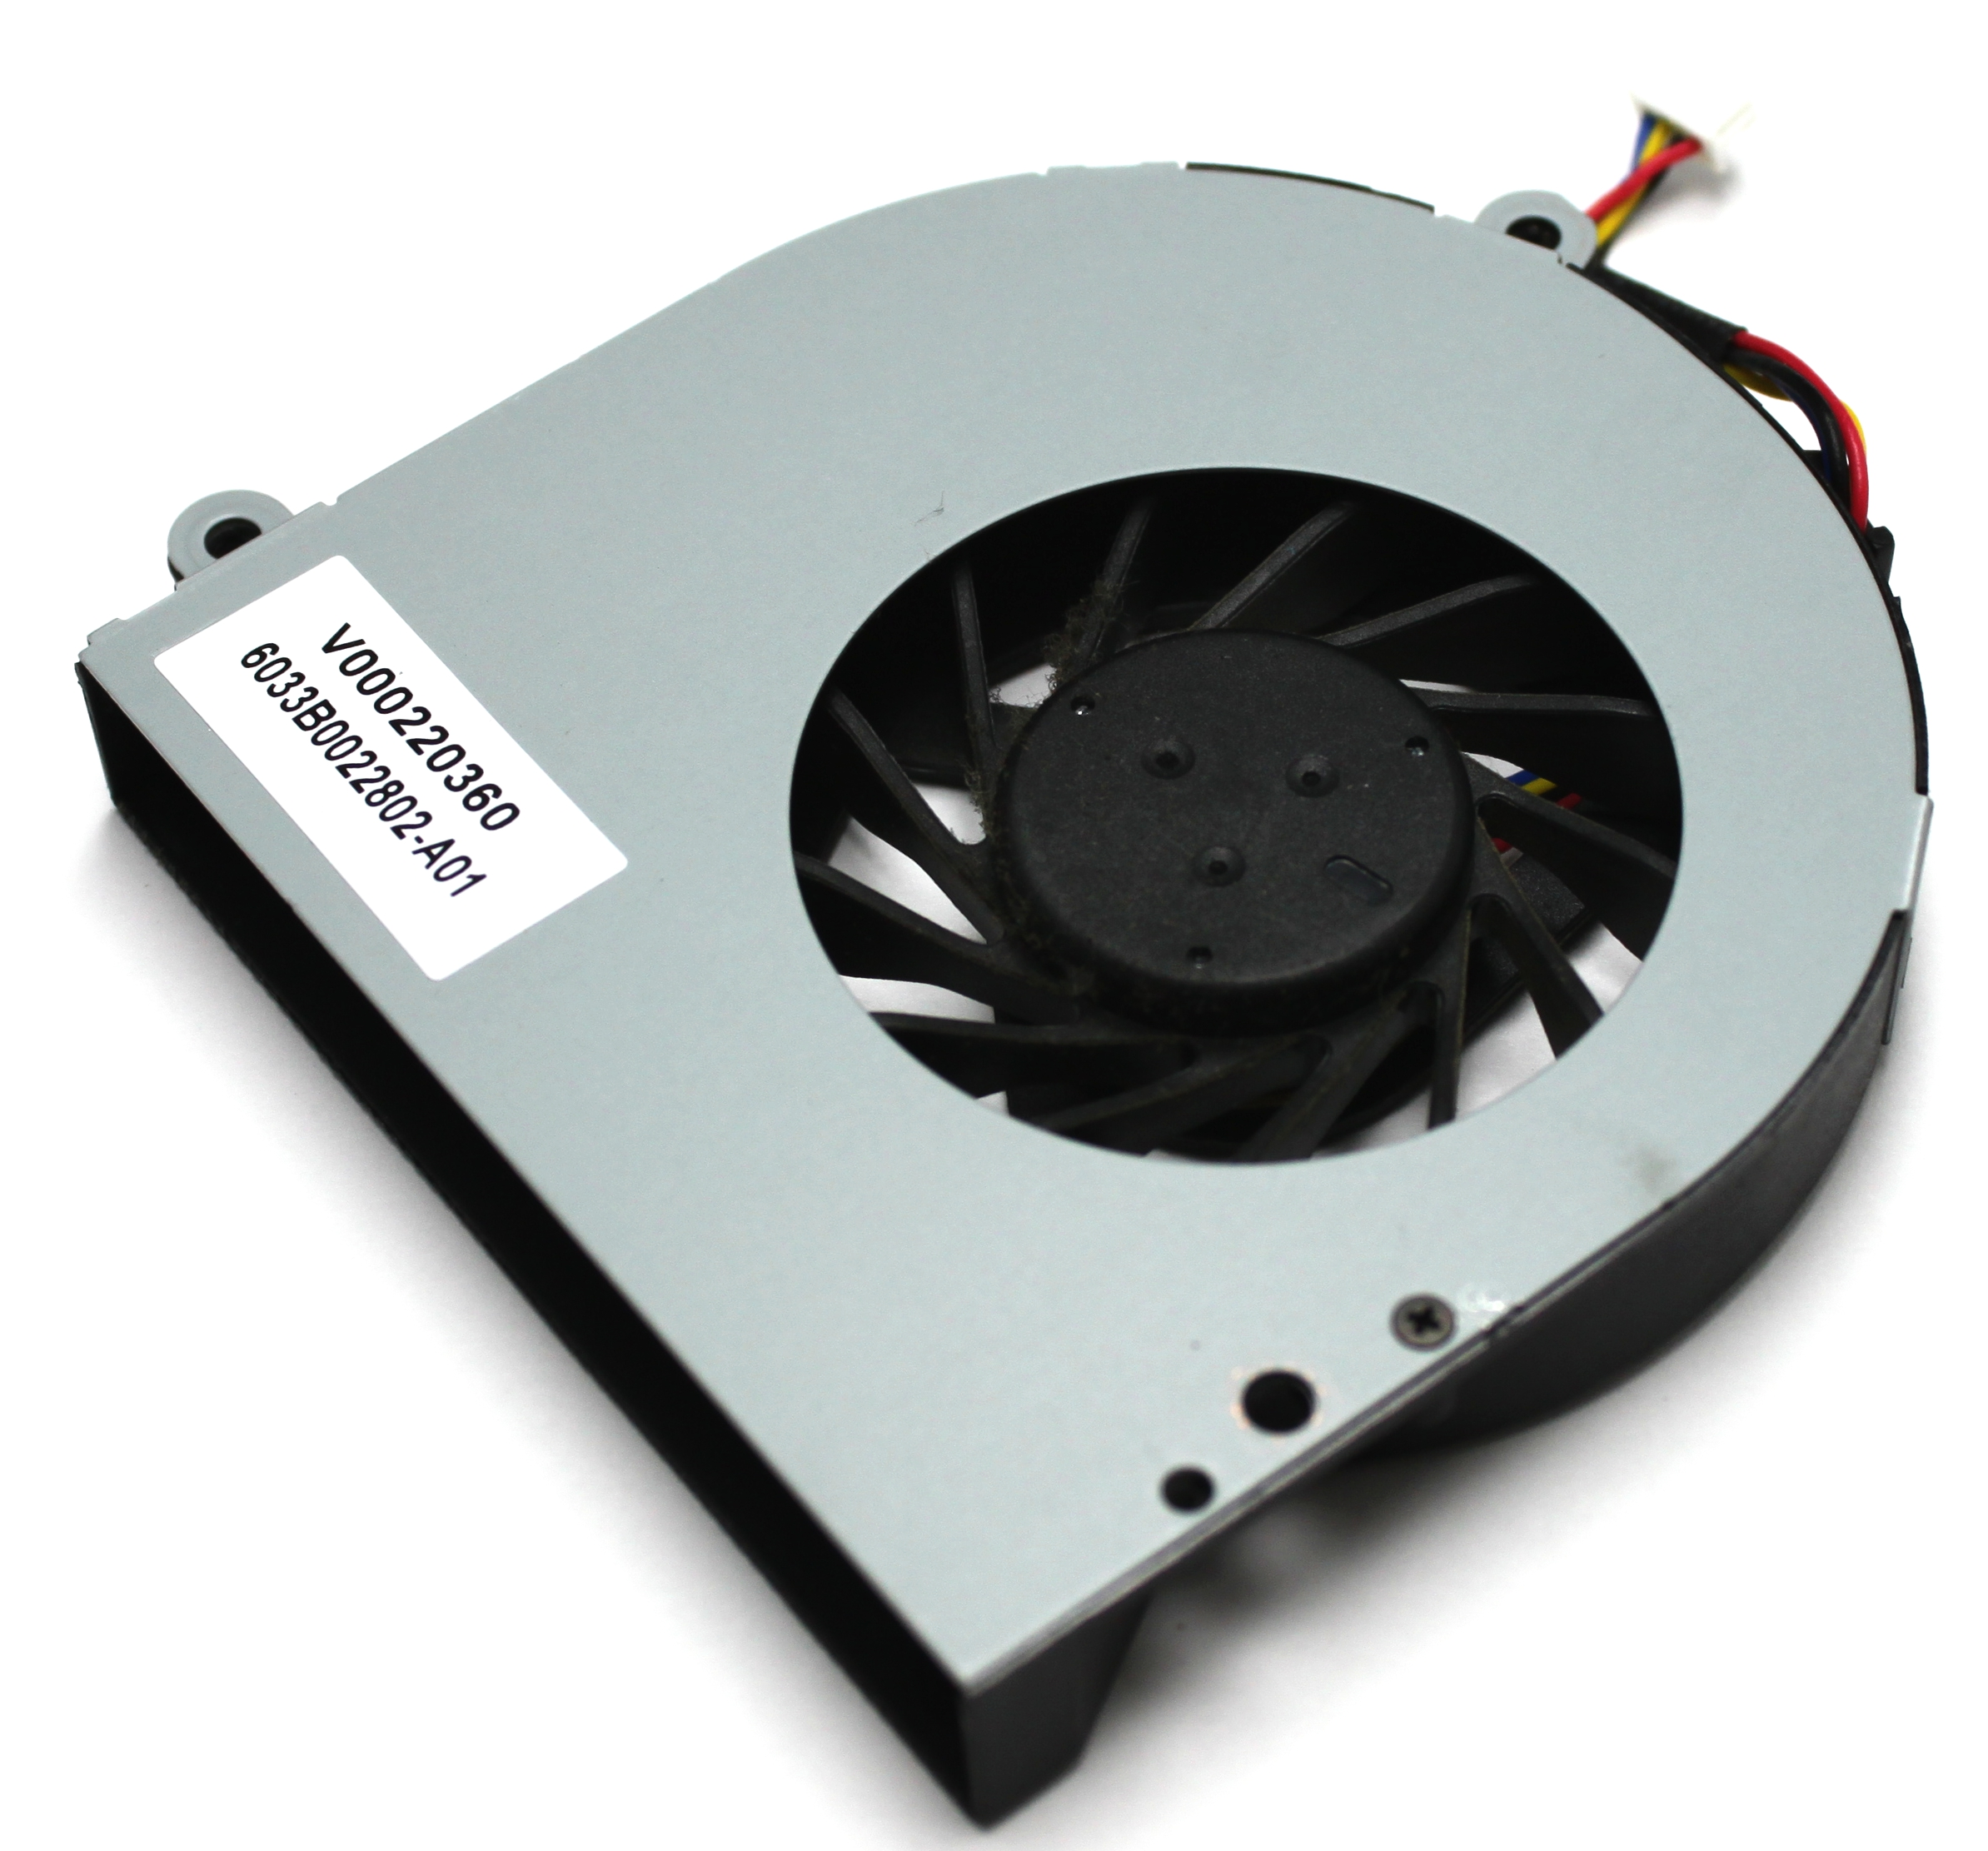 Toshiba Satellite P75 A7200 Fan Replacement Part